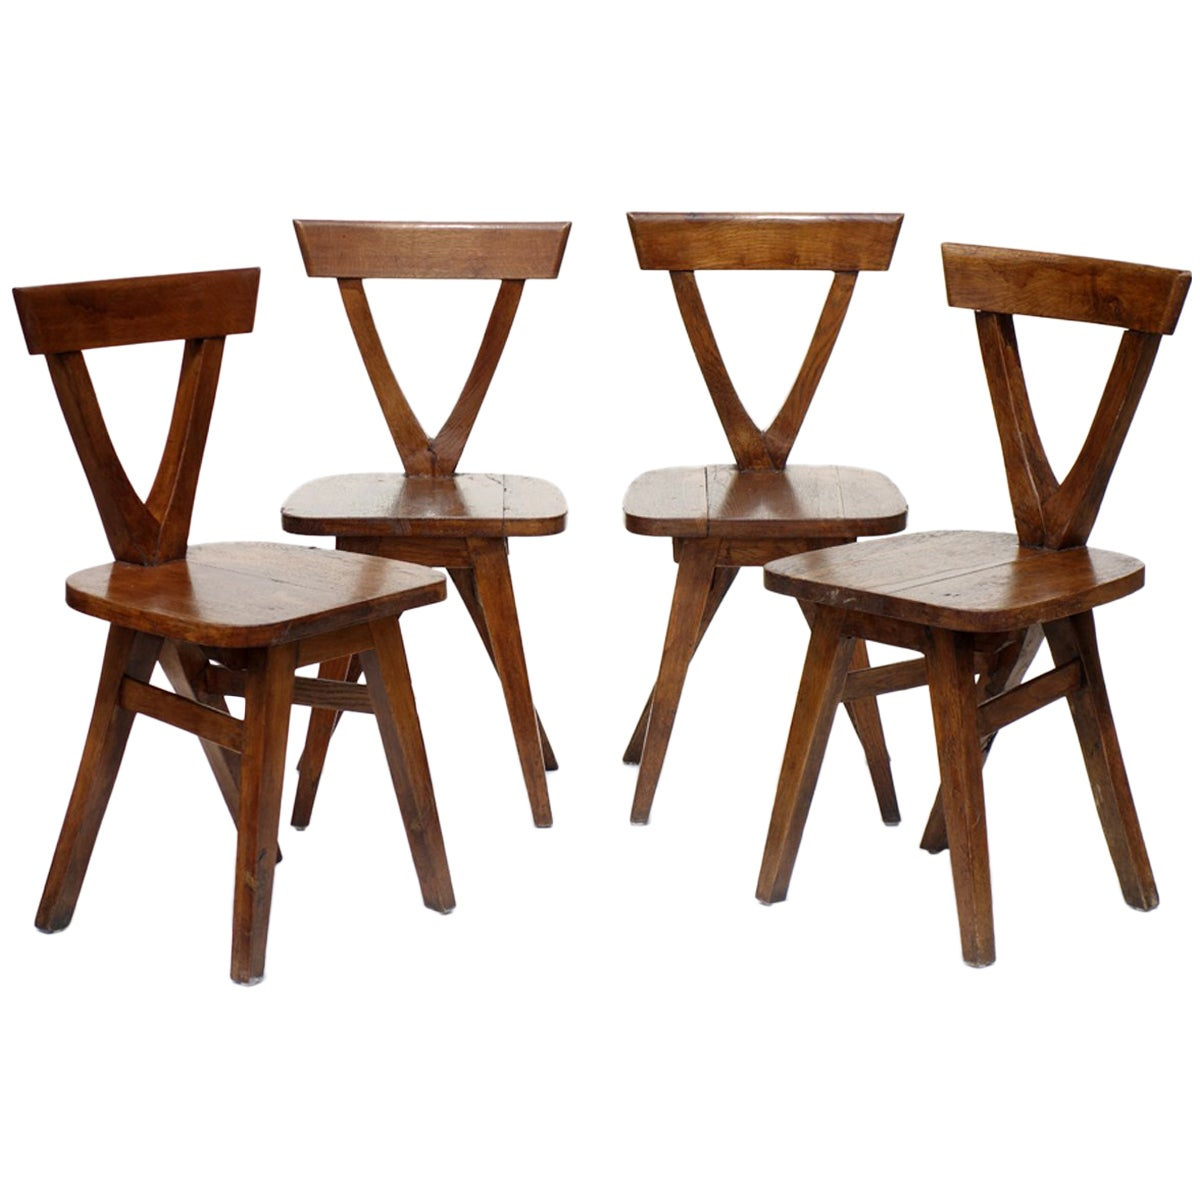 Folk Art Early 20th Century Wood Rustic Four Chairs